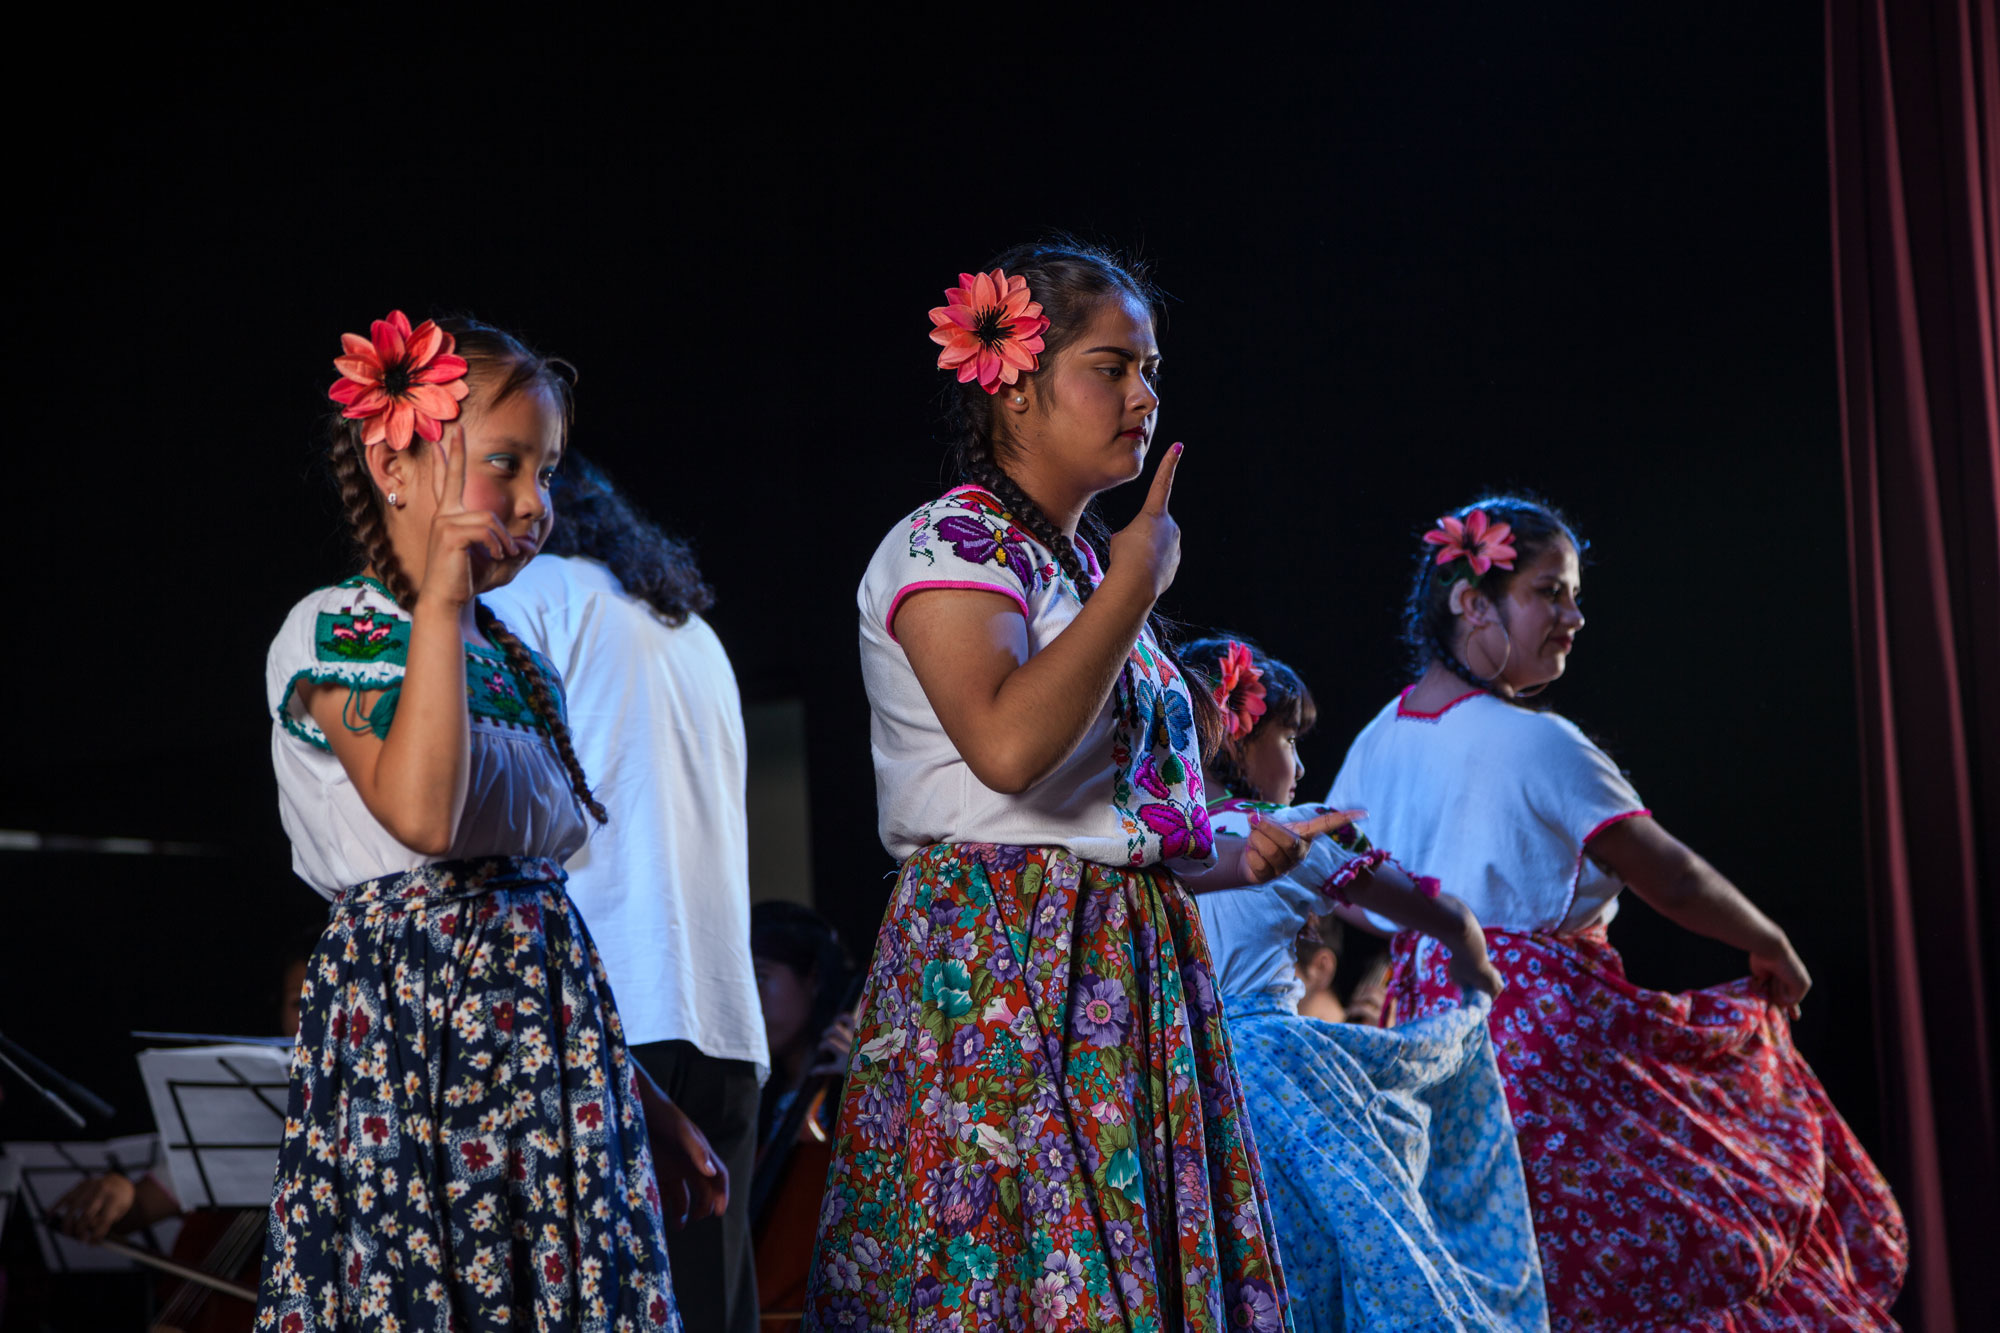 jubilaeumsanlass-in-mexico-00